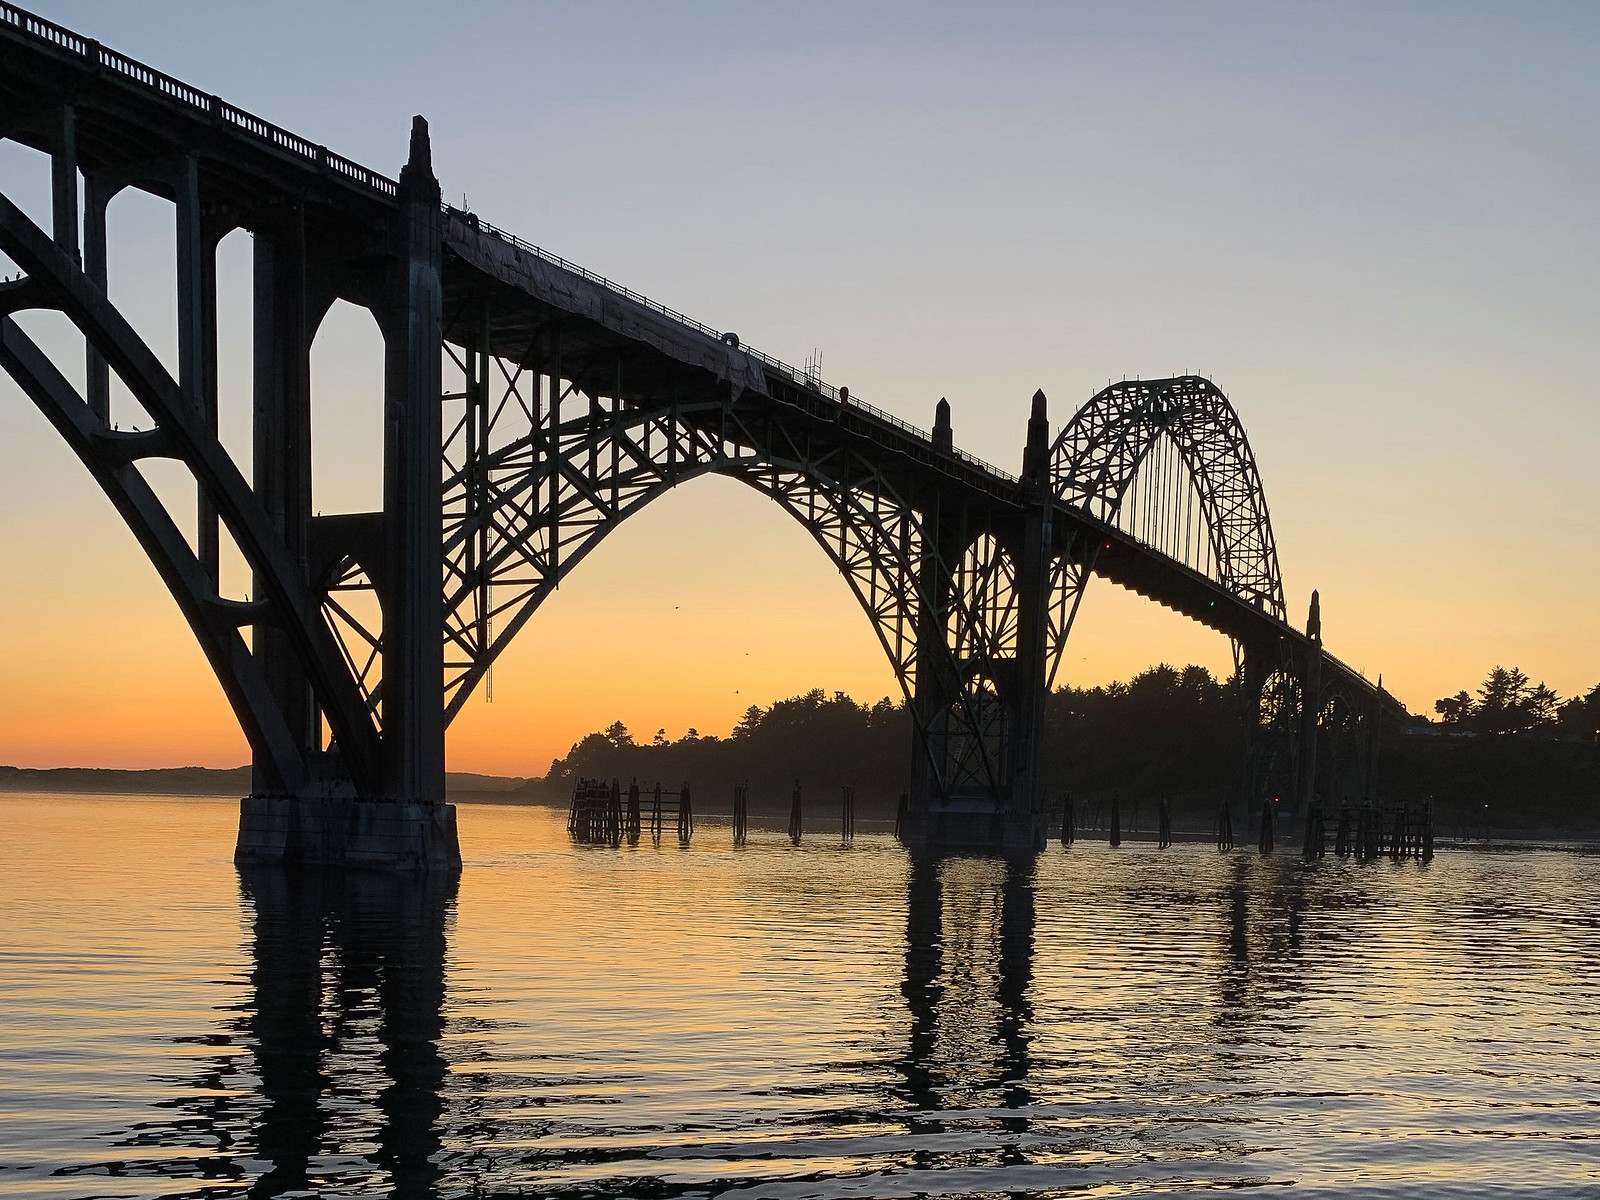 Silhouette of the Hwy 101 bridge